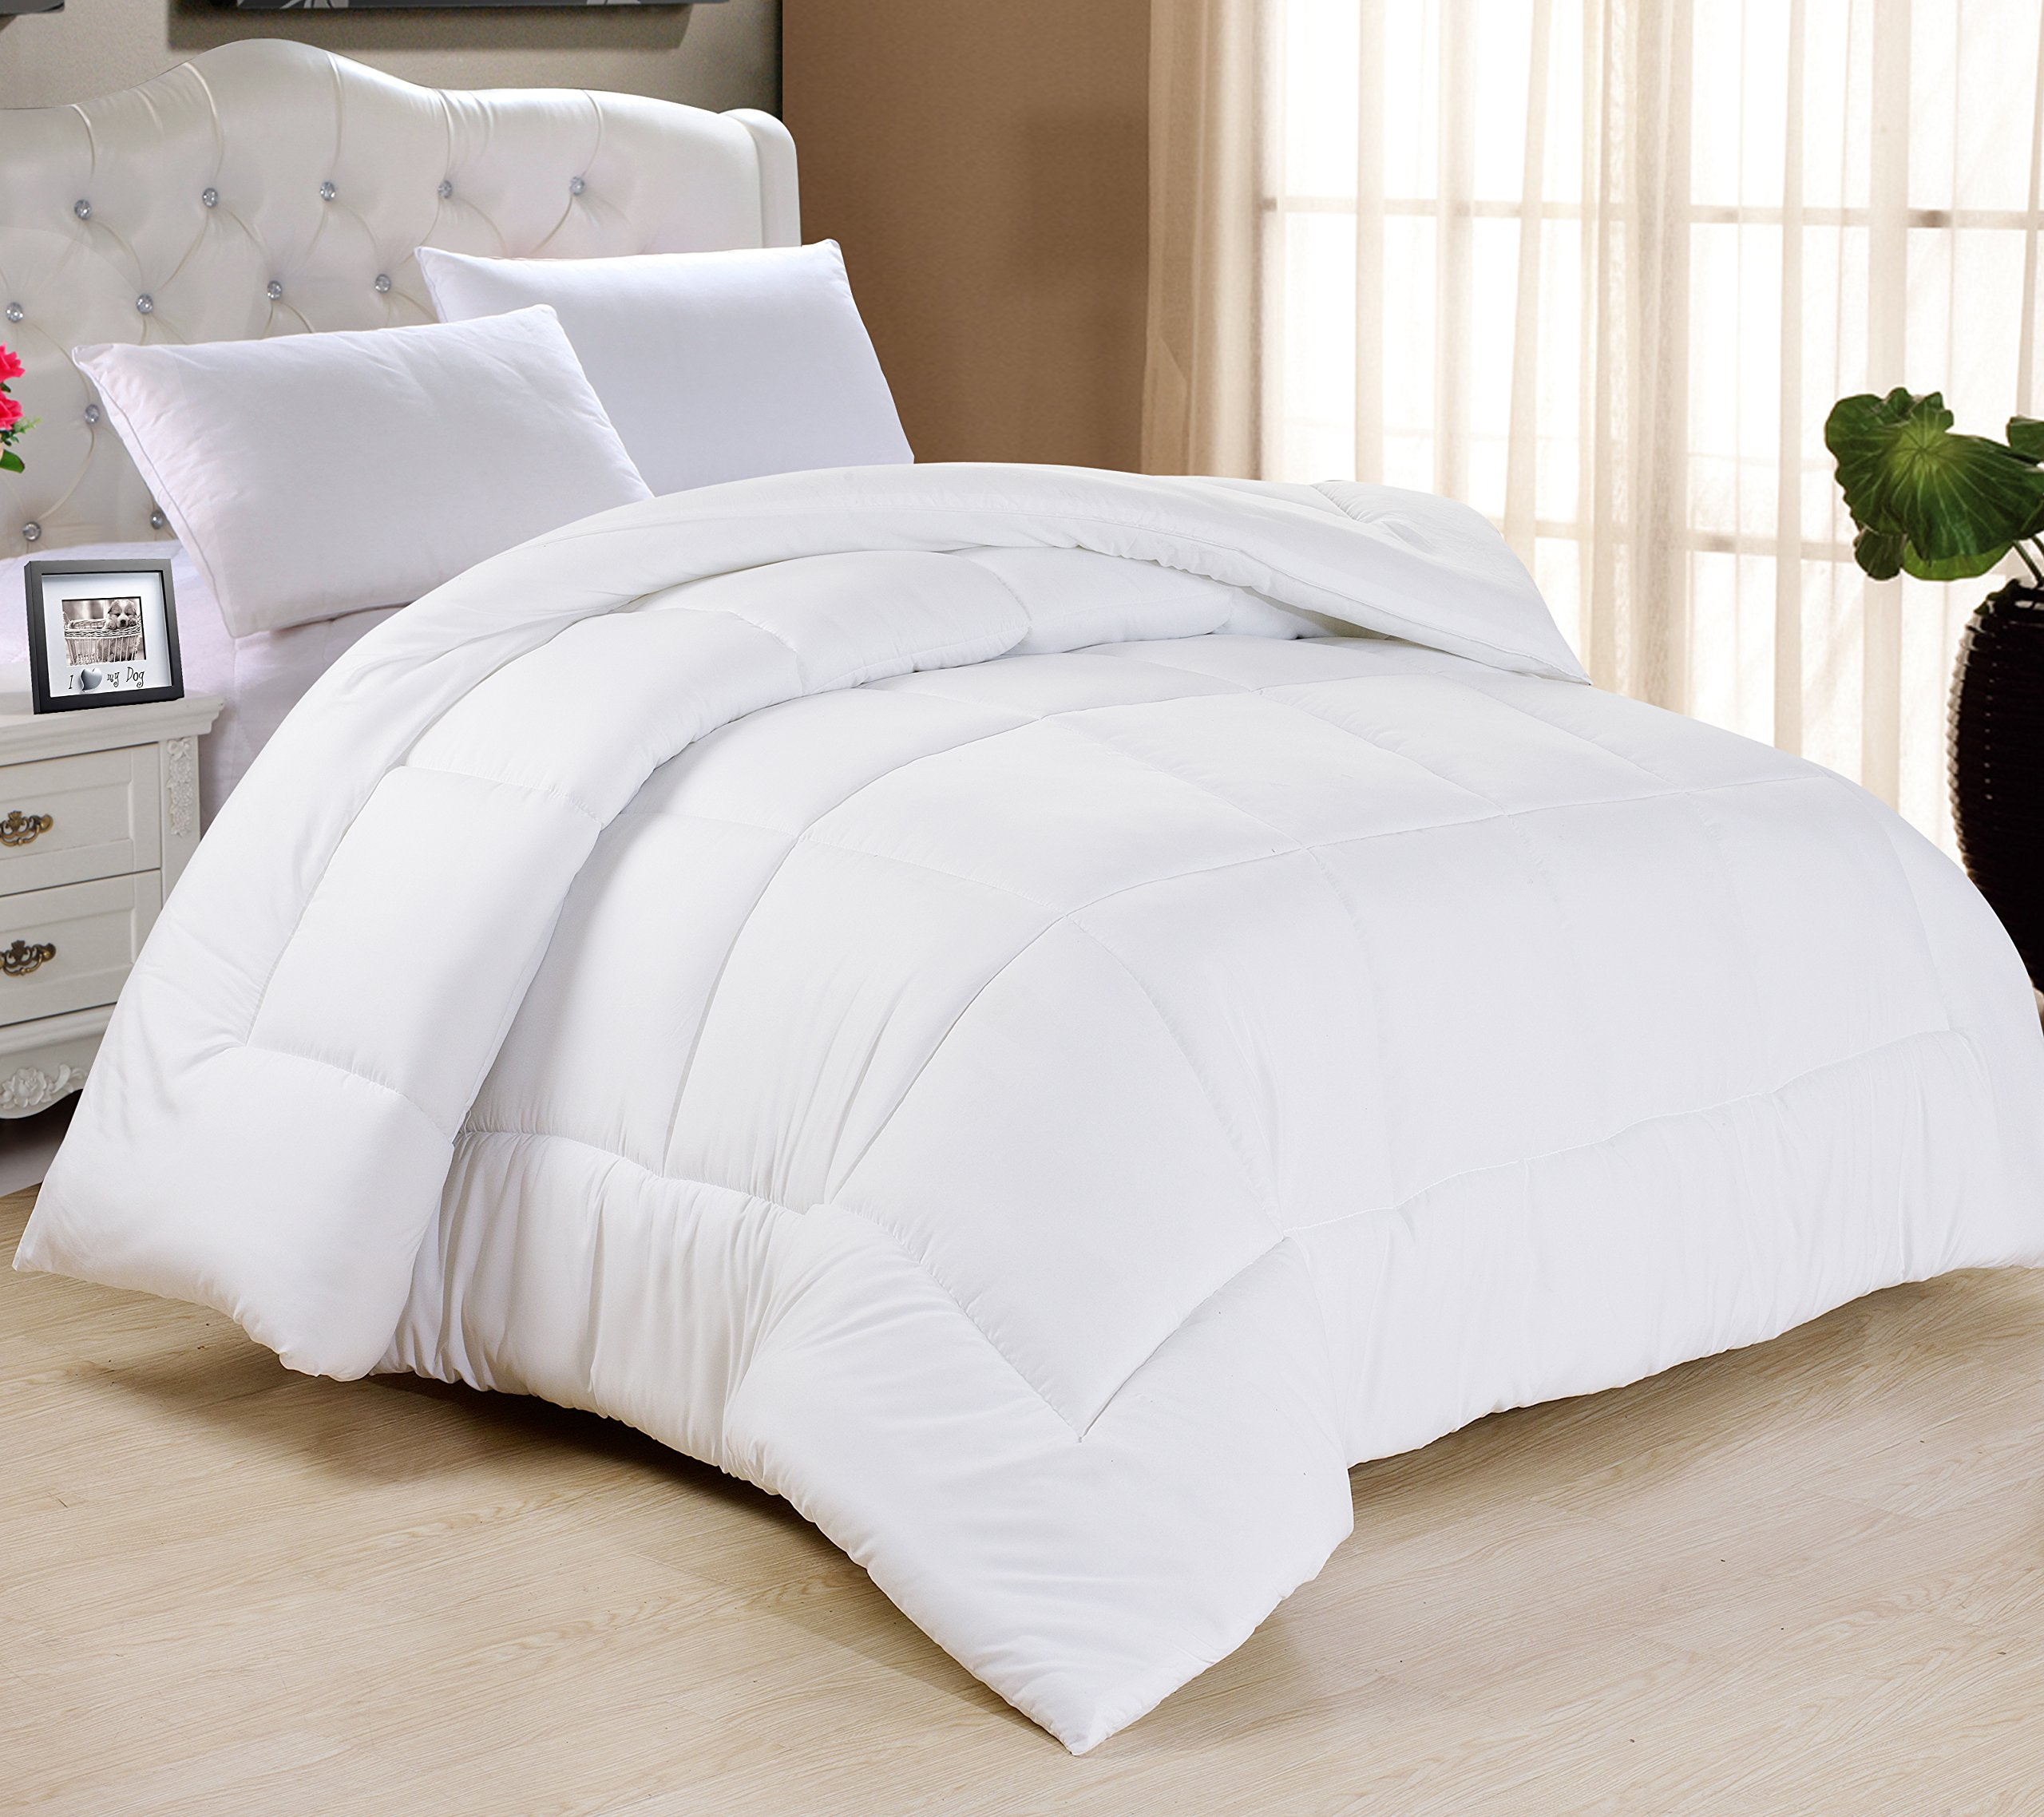 Swift Home All-season Extra Soft Luxurious Classic Light-Warmth Goose Down-Alternative Comforter, Twin 68'' x 90'', White